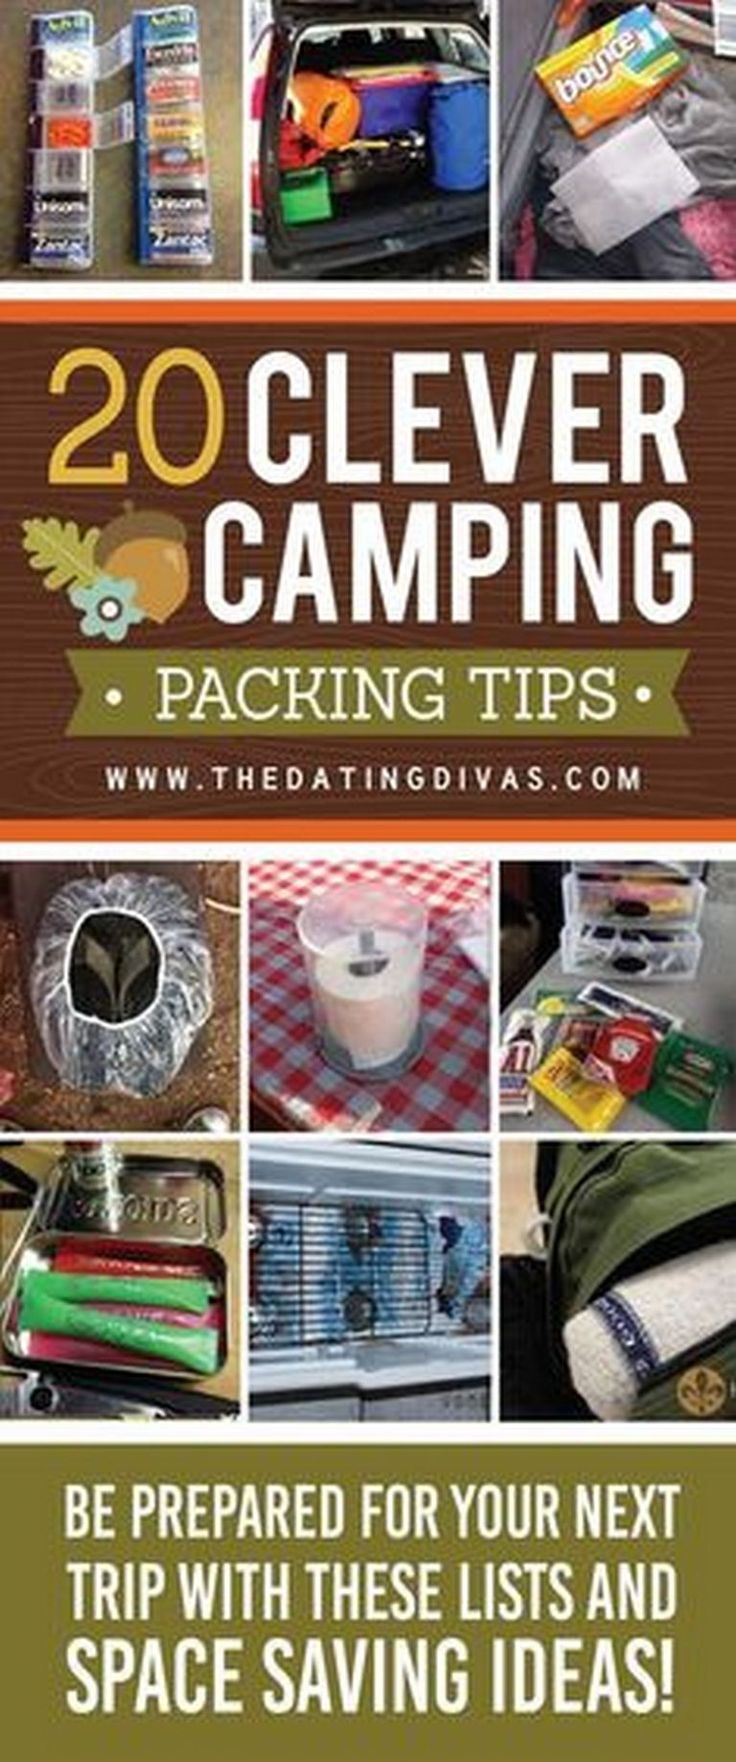 80 clever camping packing tips camper hacks ideas